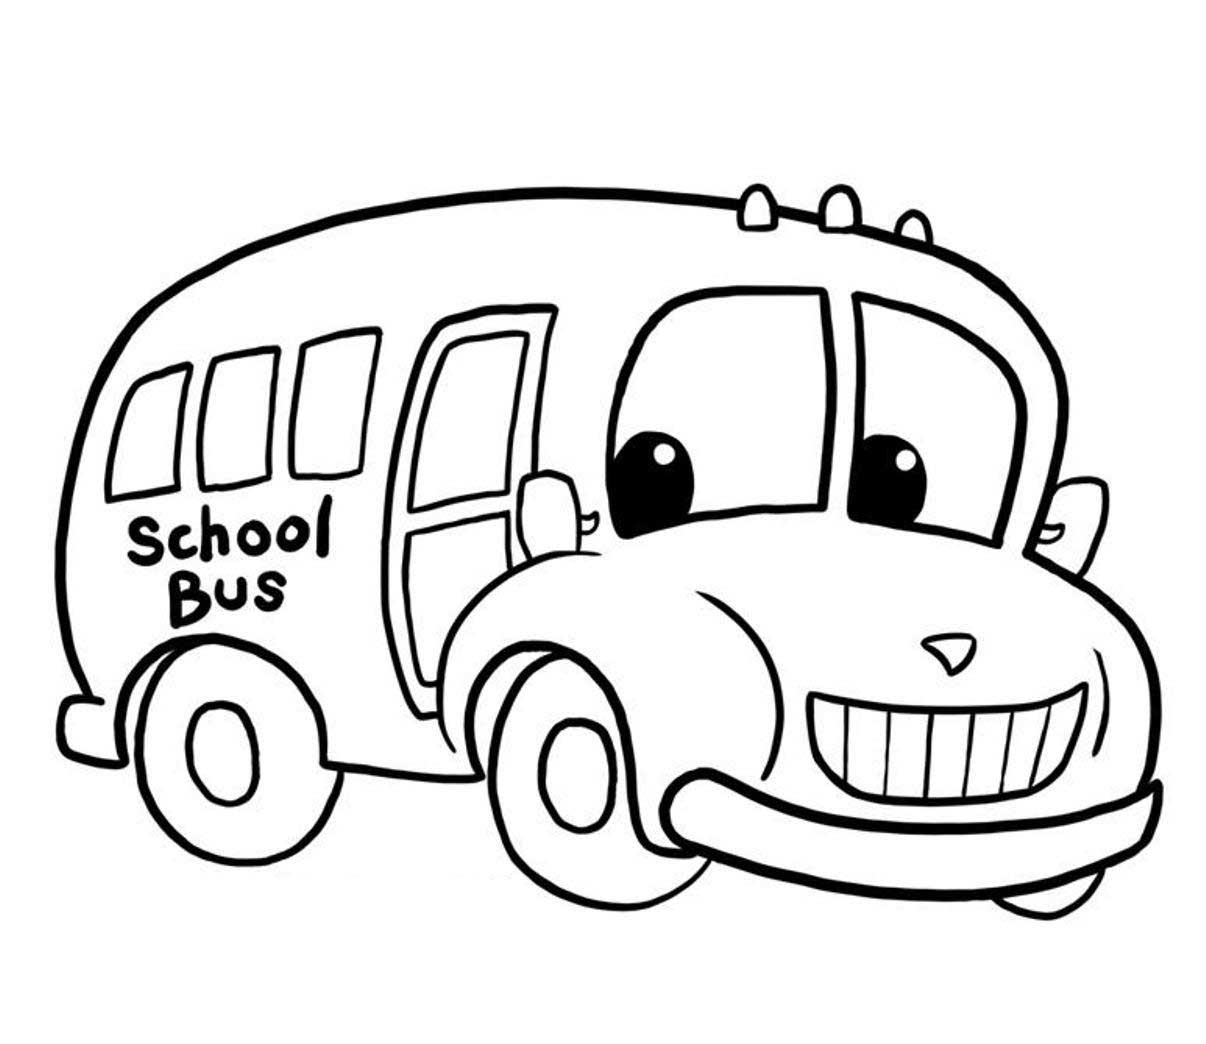 Printable school bus coloring page for free for School bus coloring page